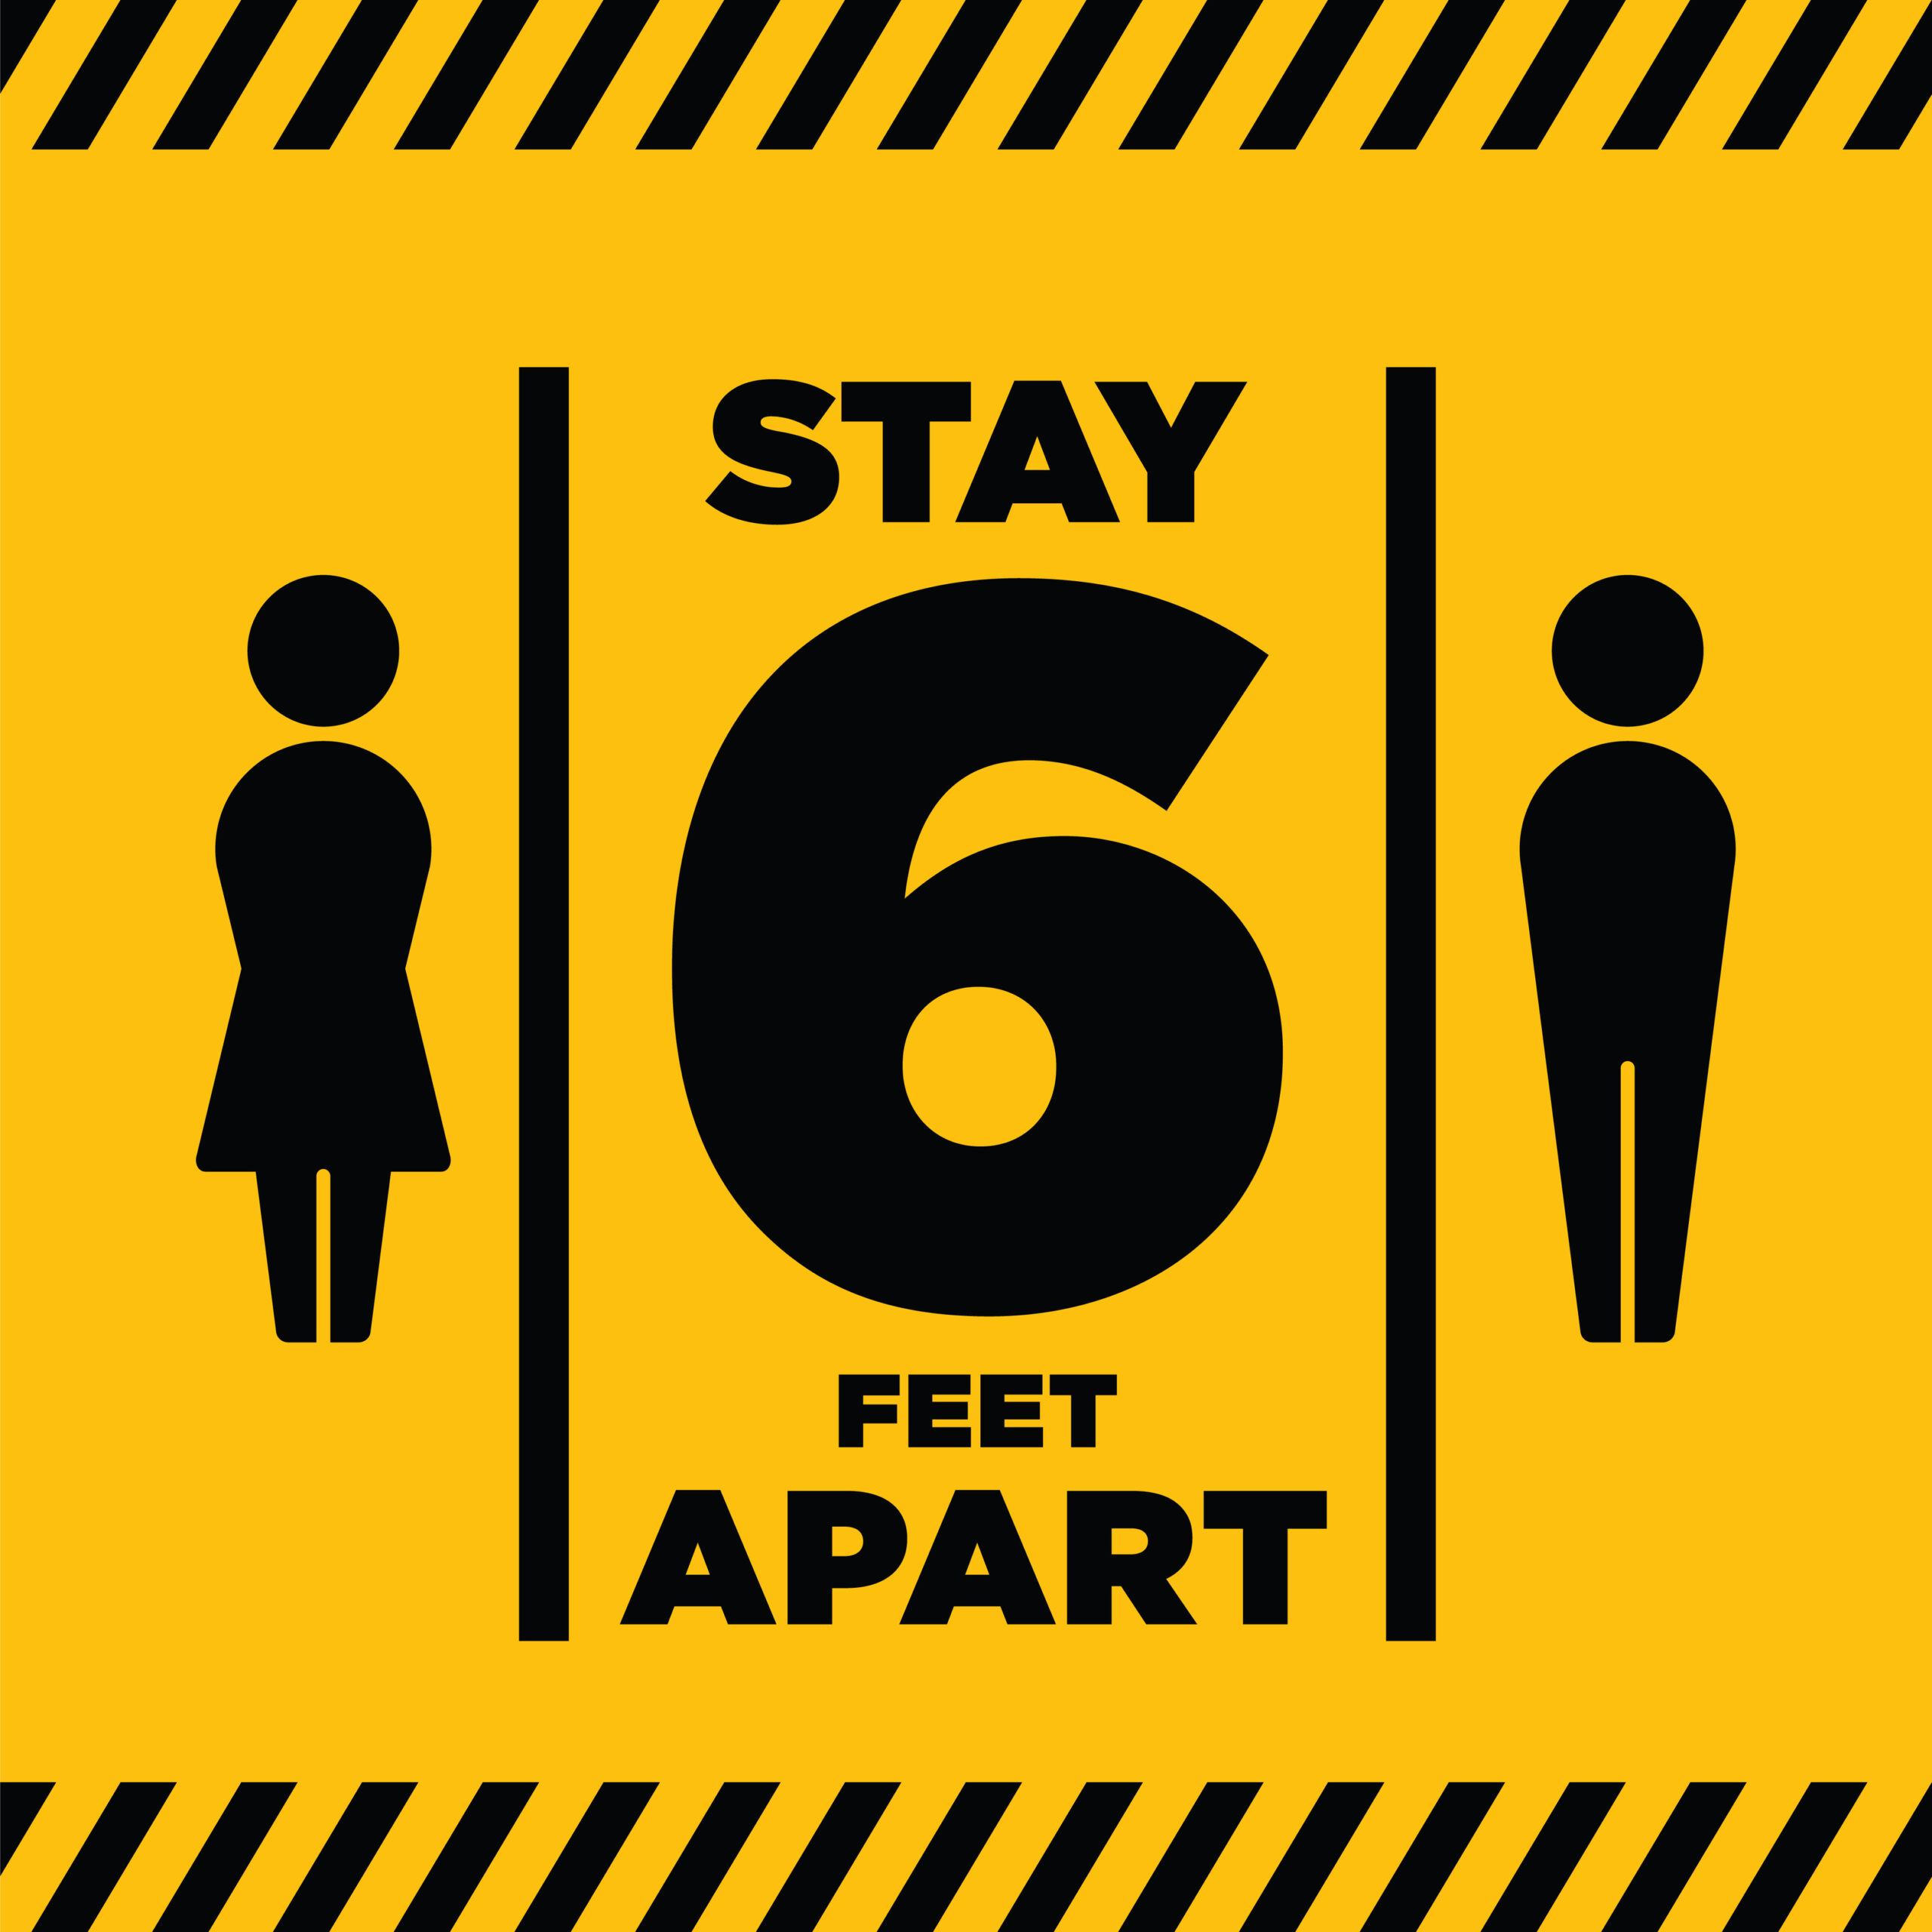 stay 6 feet apart sign in yellow